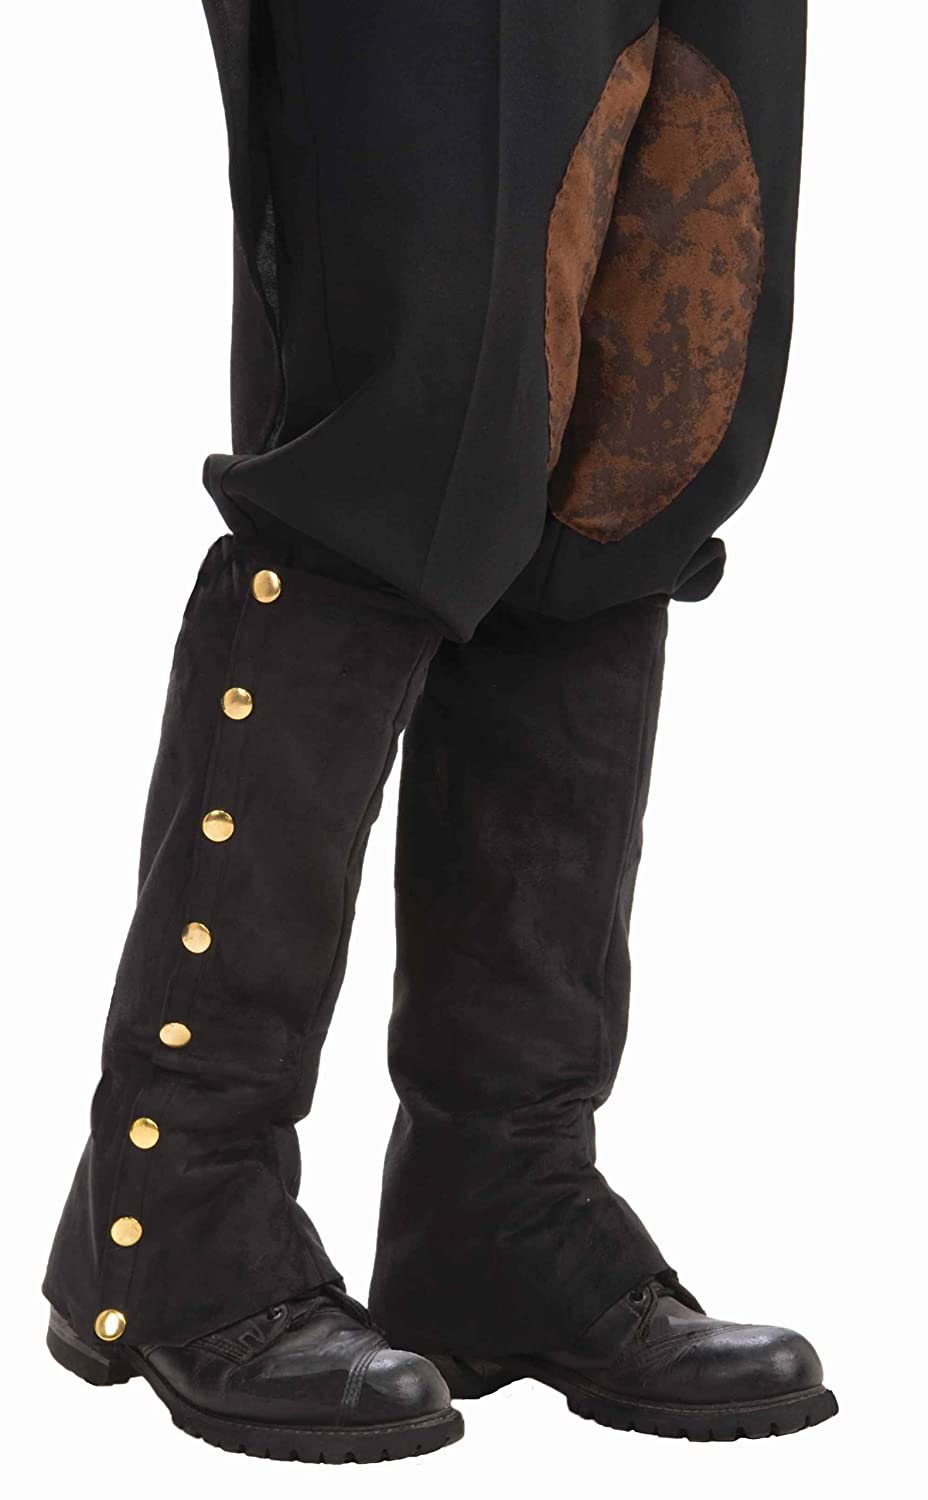 Men's Adult Costume Boot Top